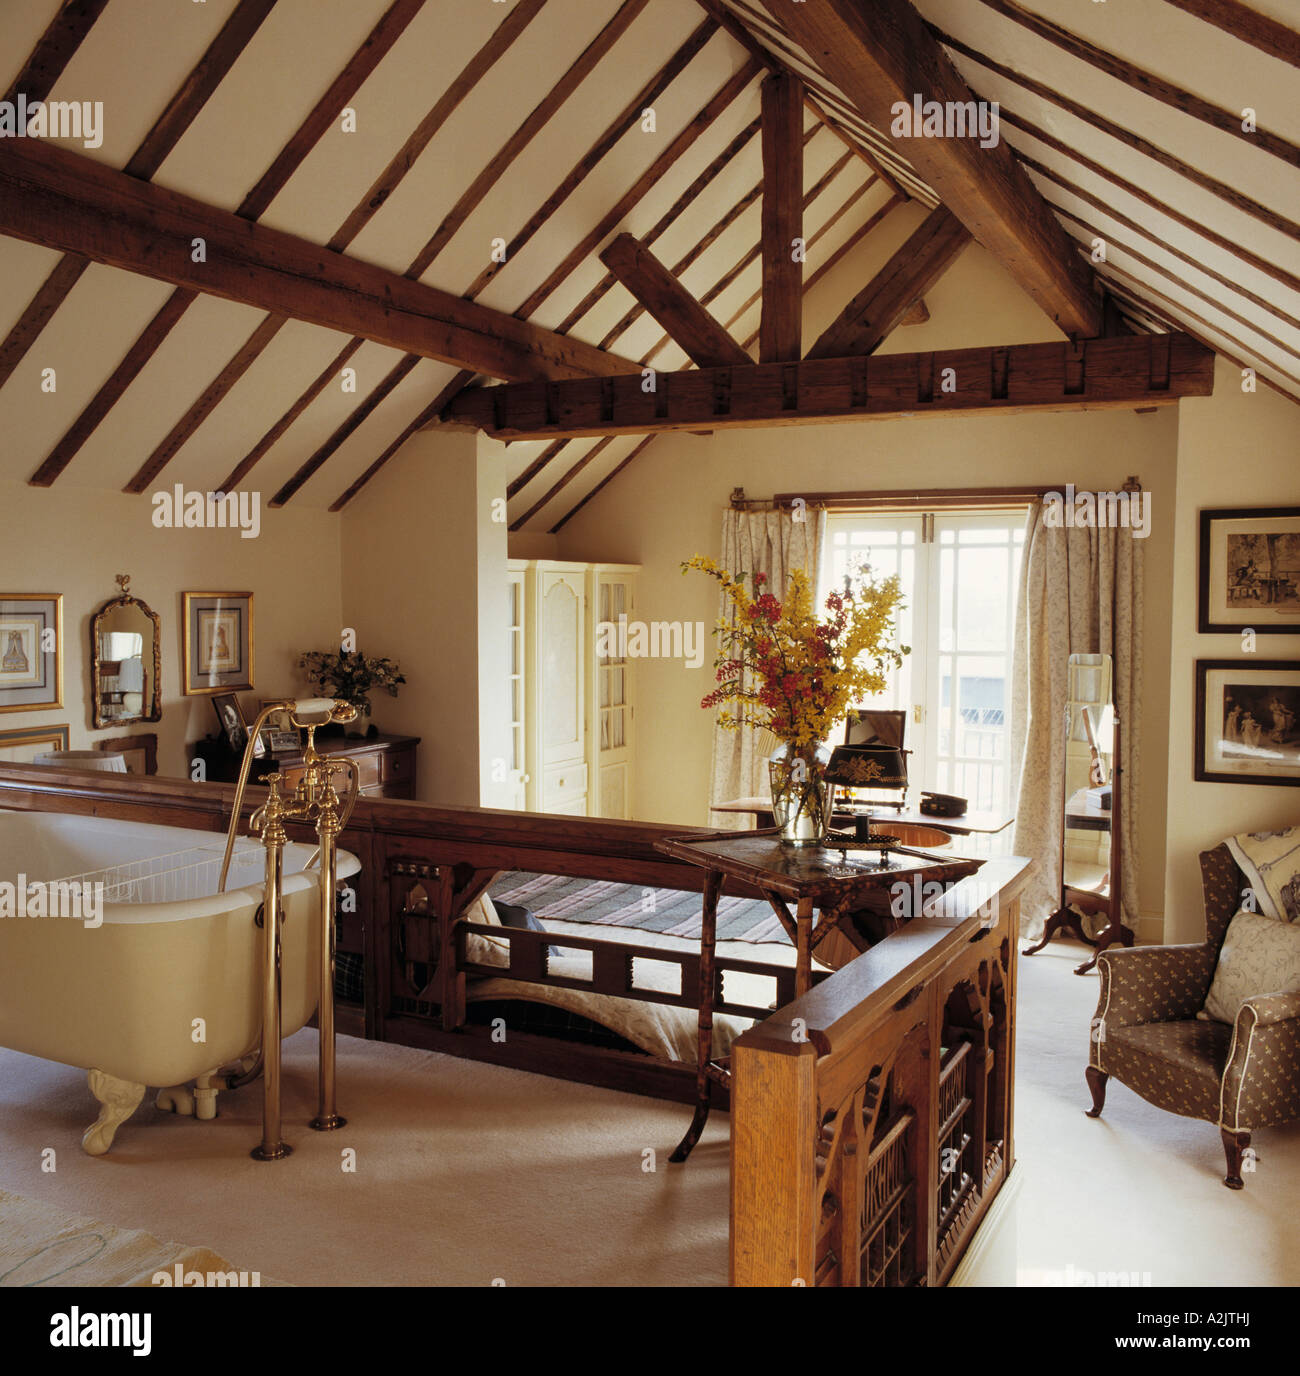 country interiors traditional conversion stockfotos country interiors traditional conversion. Black Bedroom Furniture Sets. Home Design Ideas